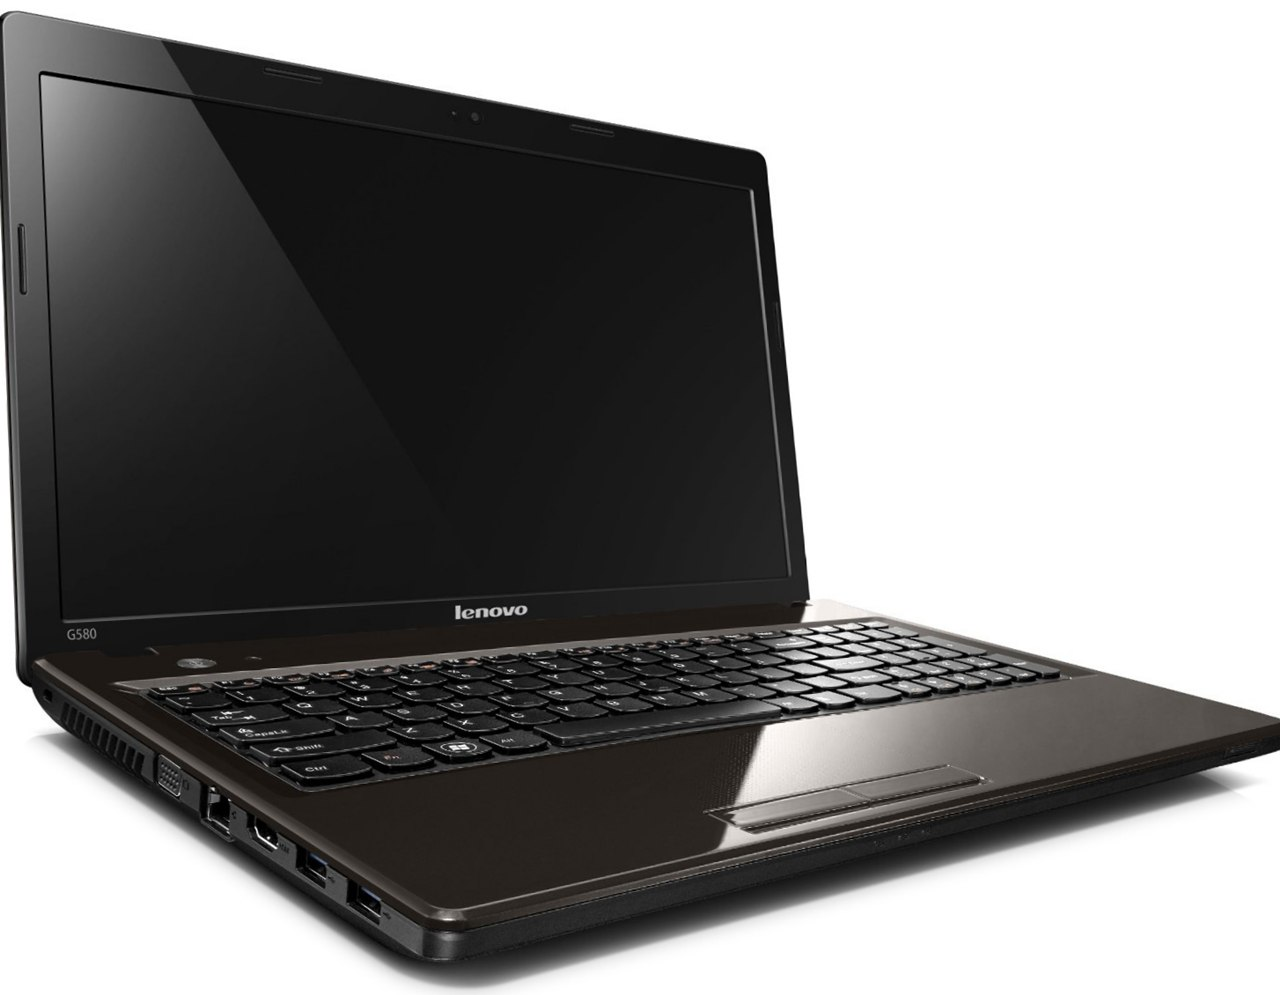 Laptop-Lenovo-G580-Intel-Core-I-3